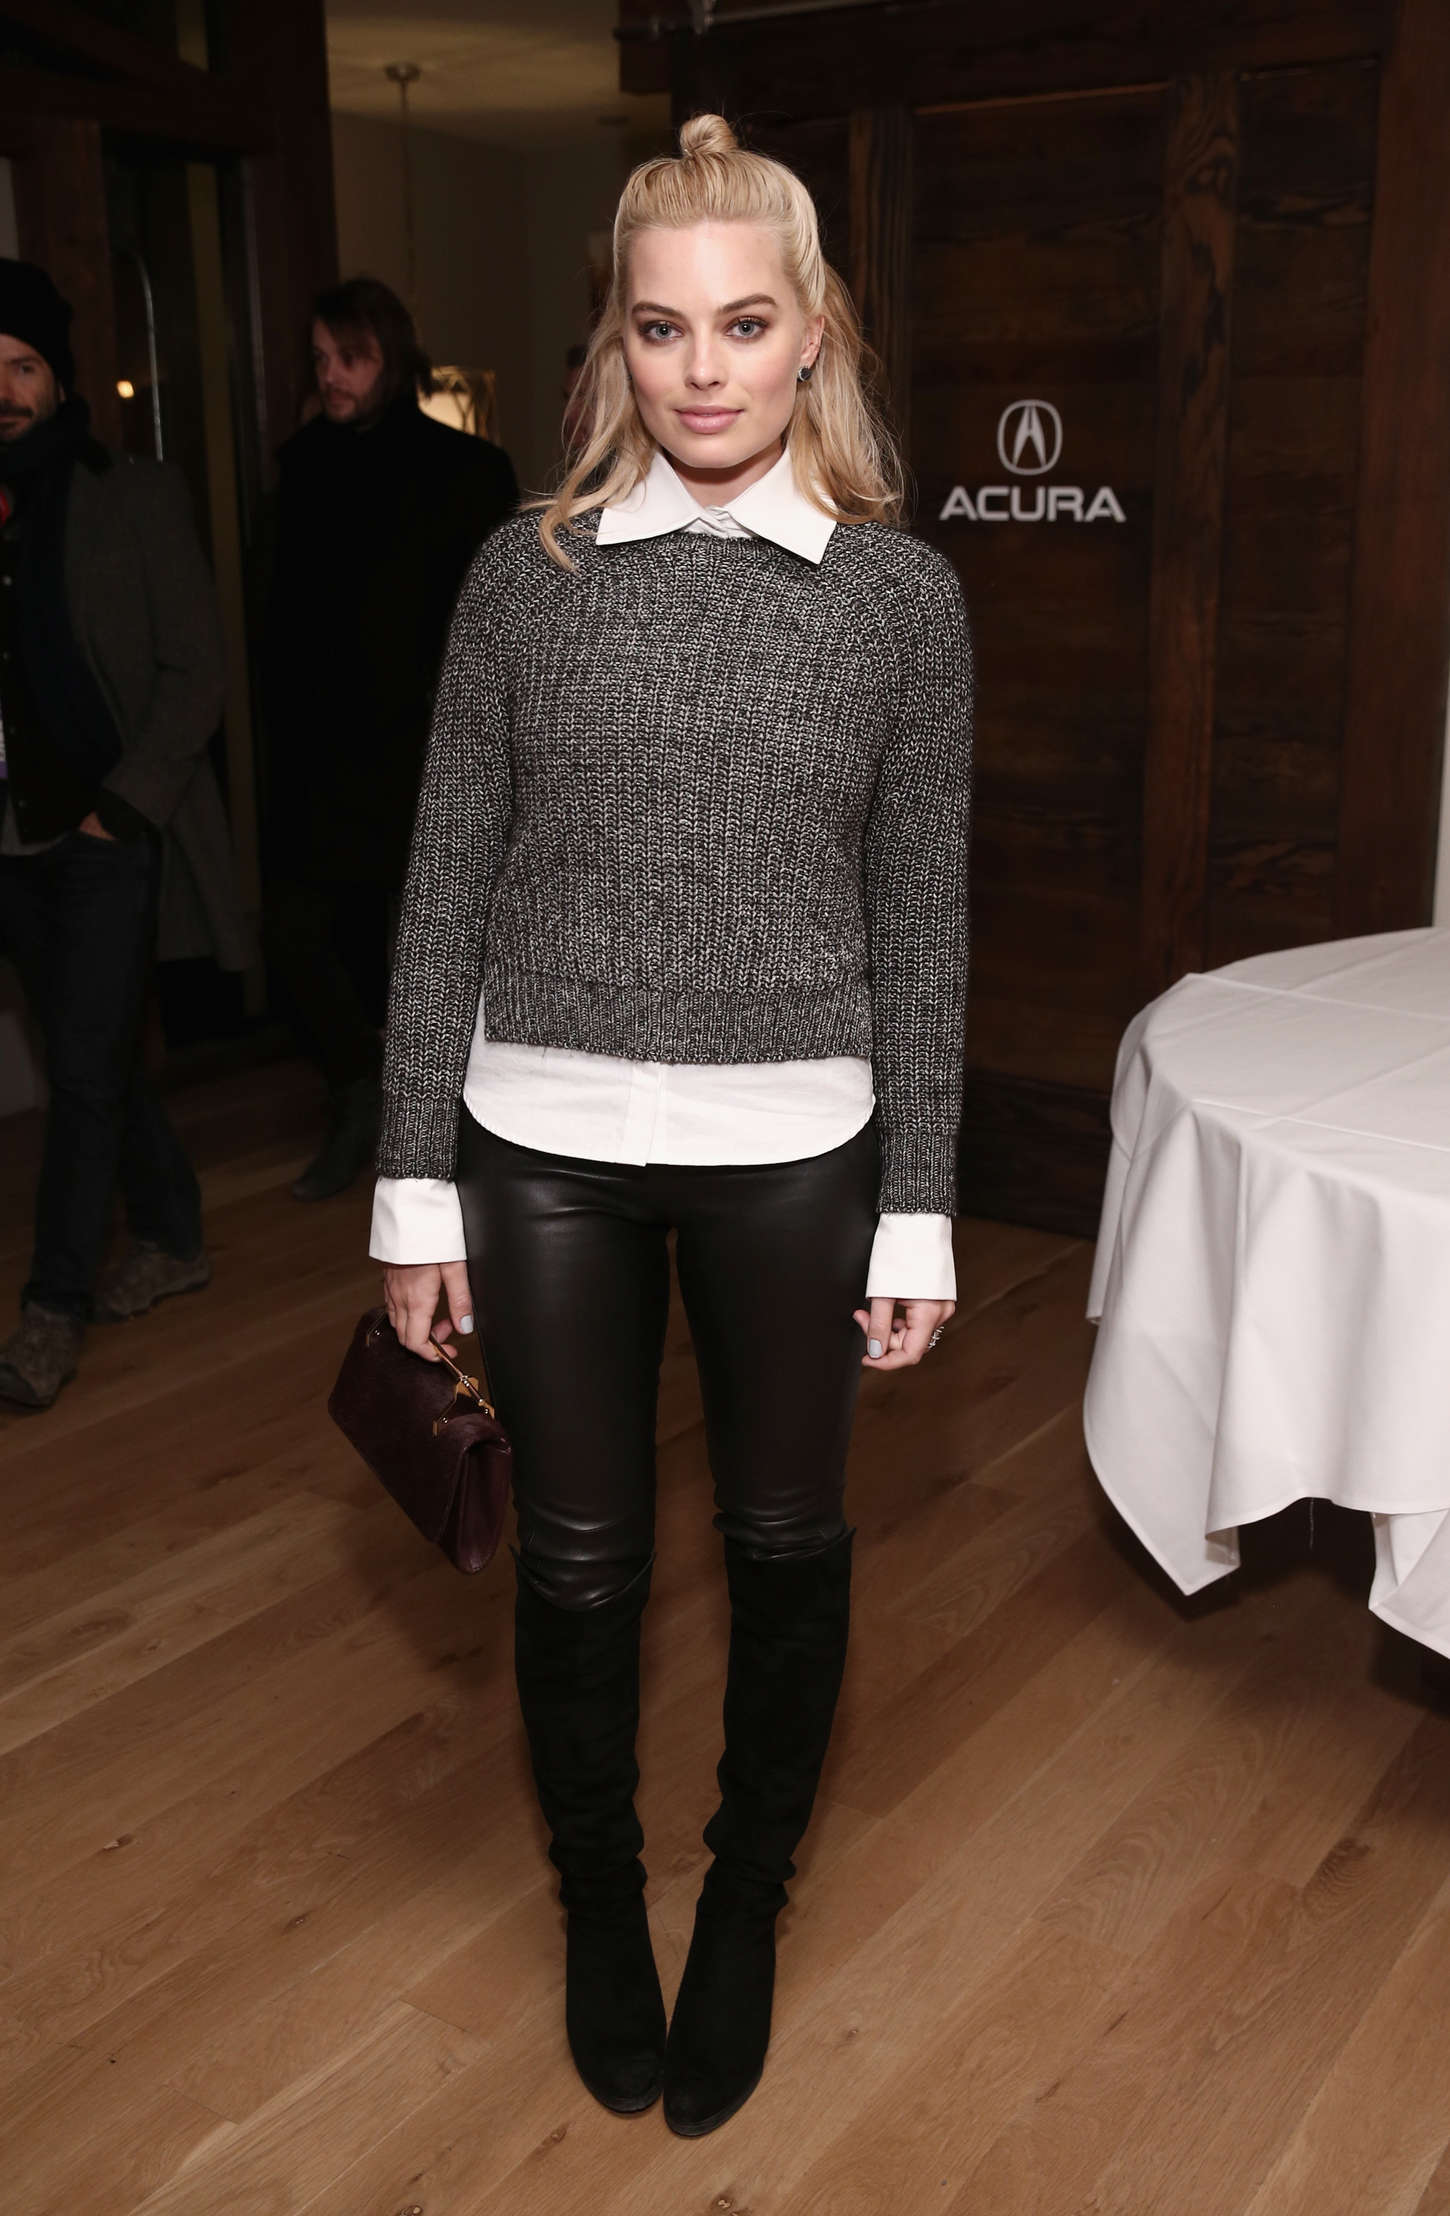 Margot Robbie Attends The Z For Zachariah Dinner Leather